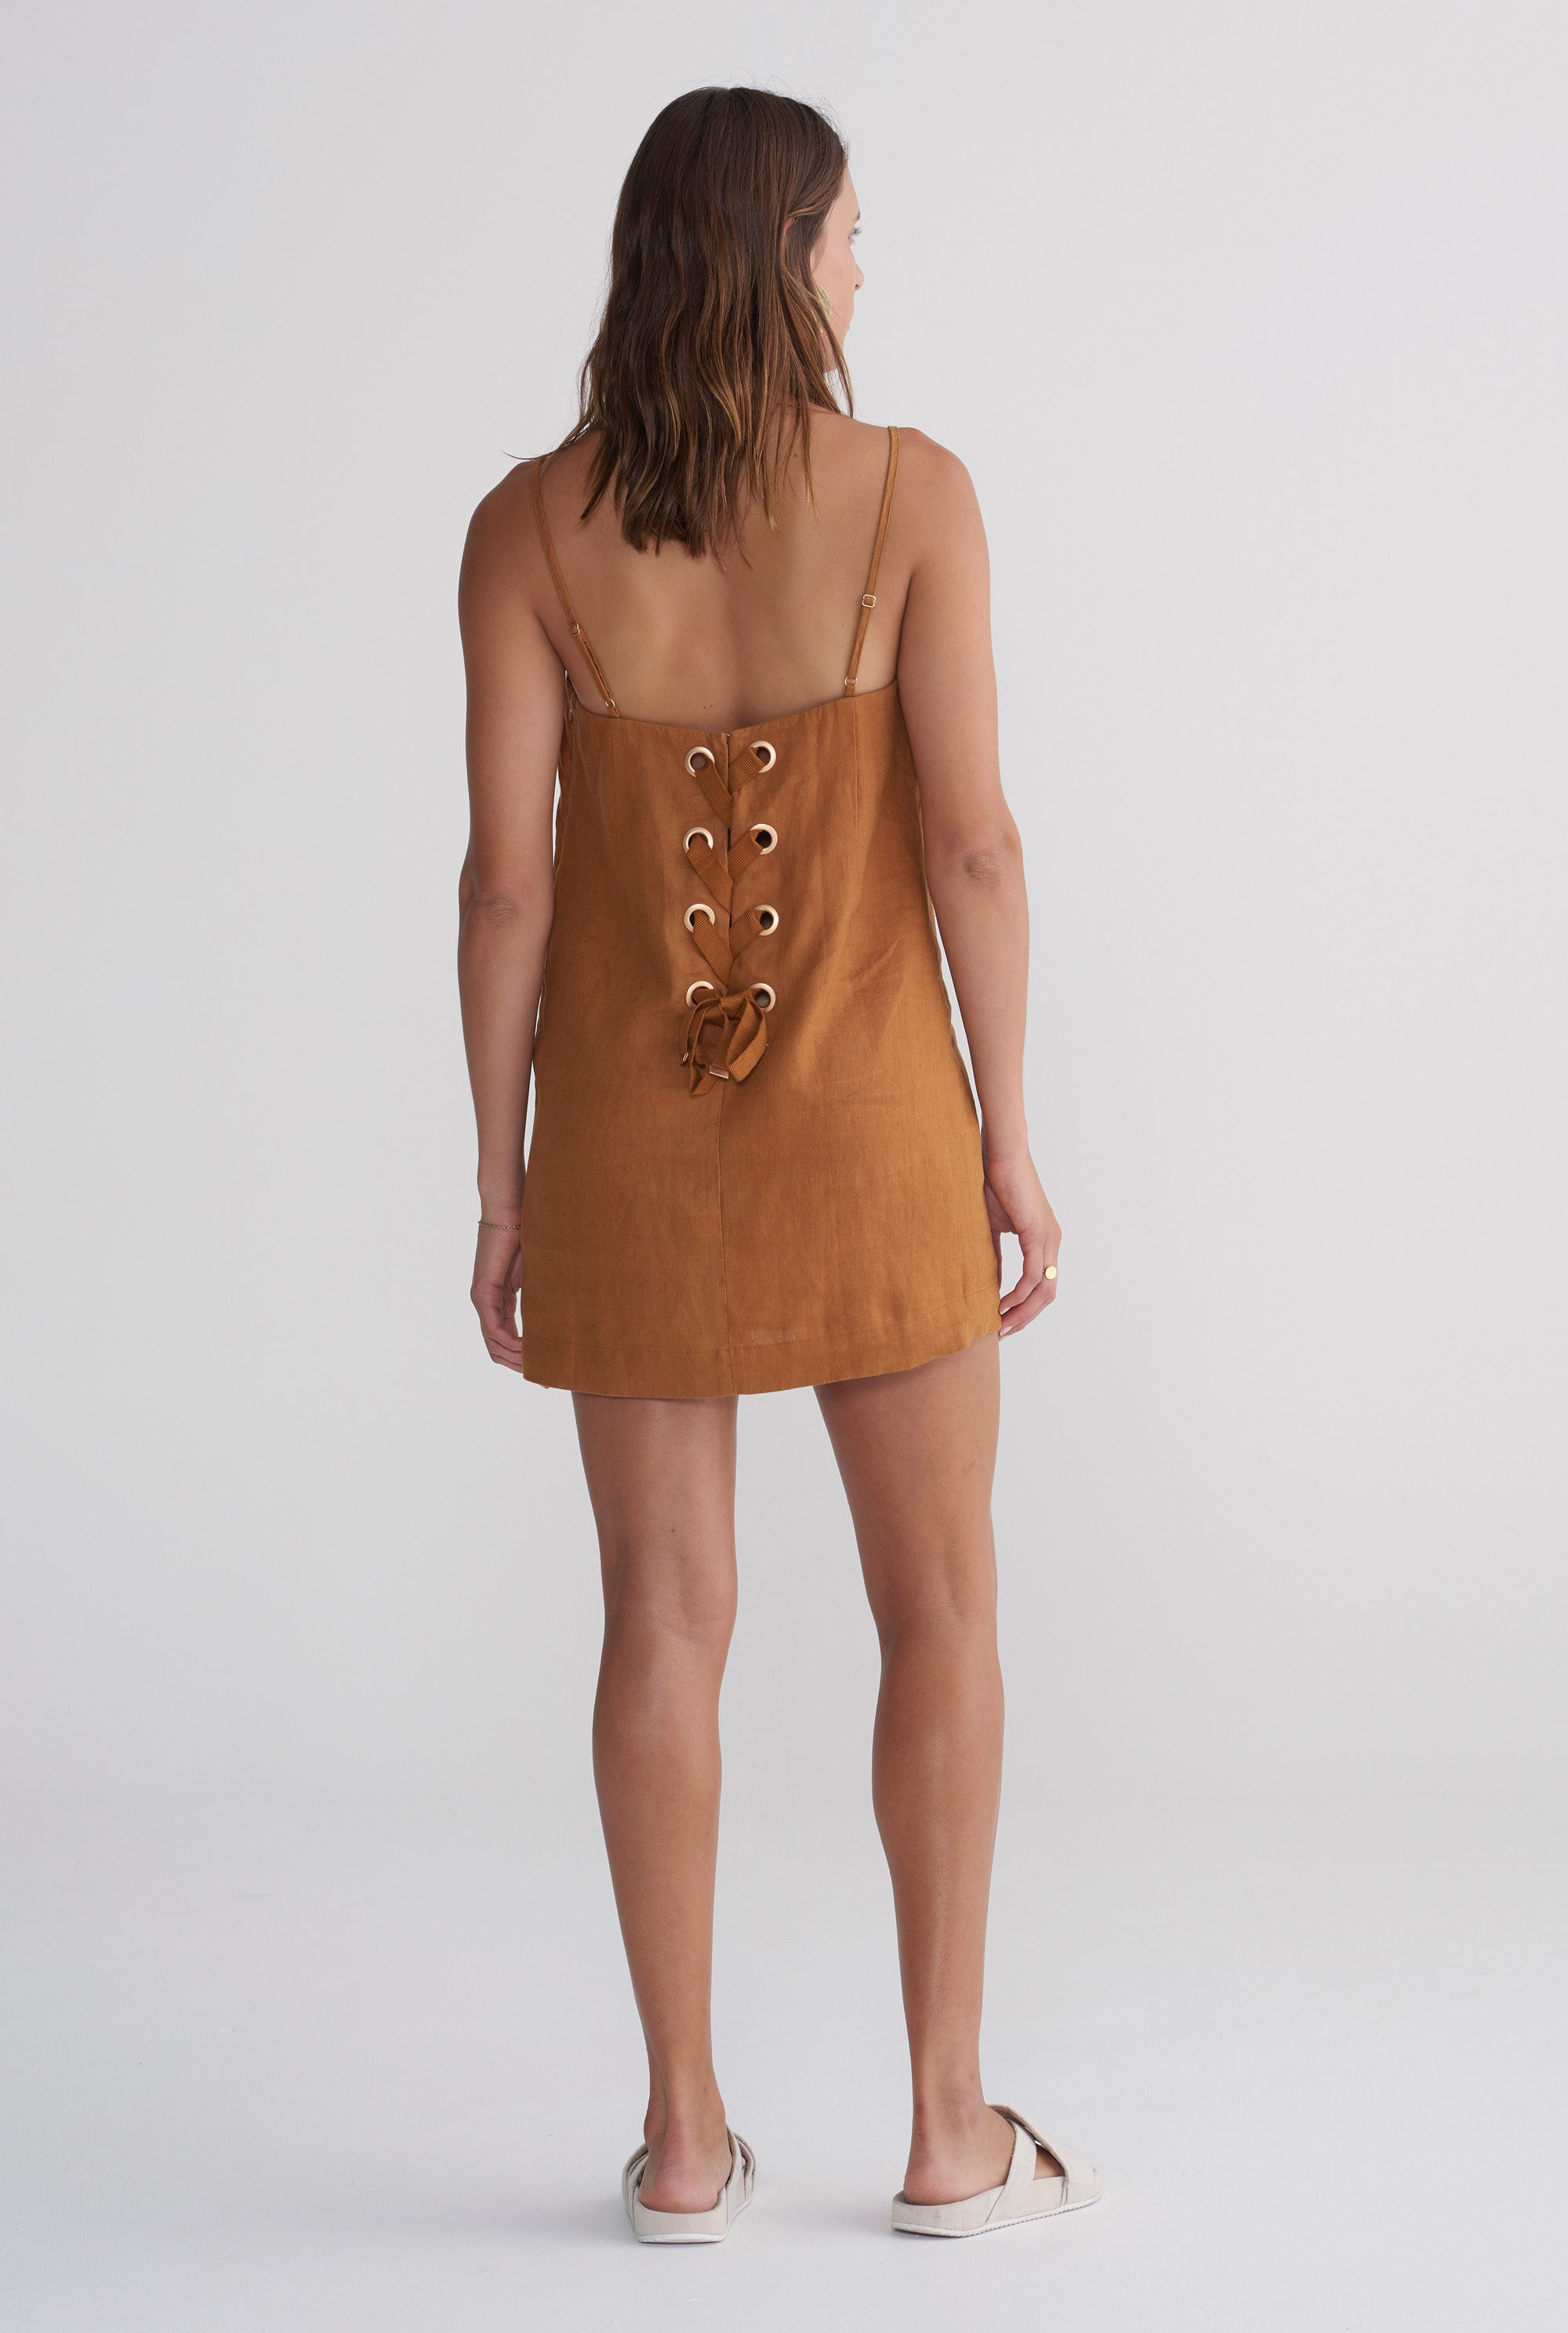 Lace Up Dress - Tobacco